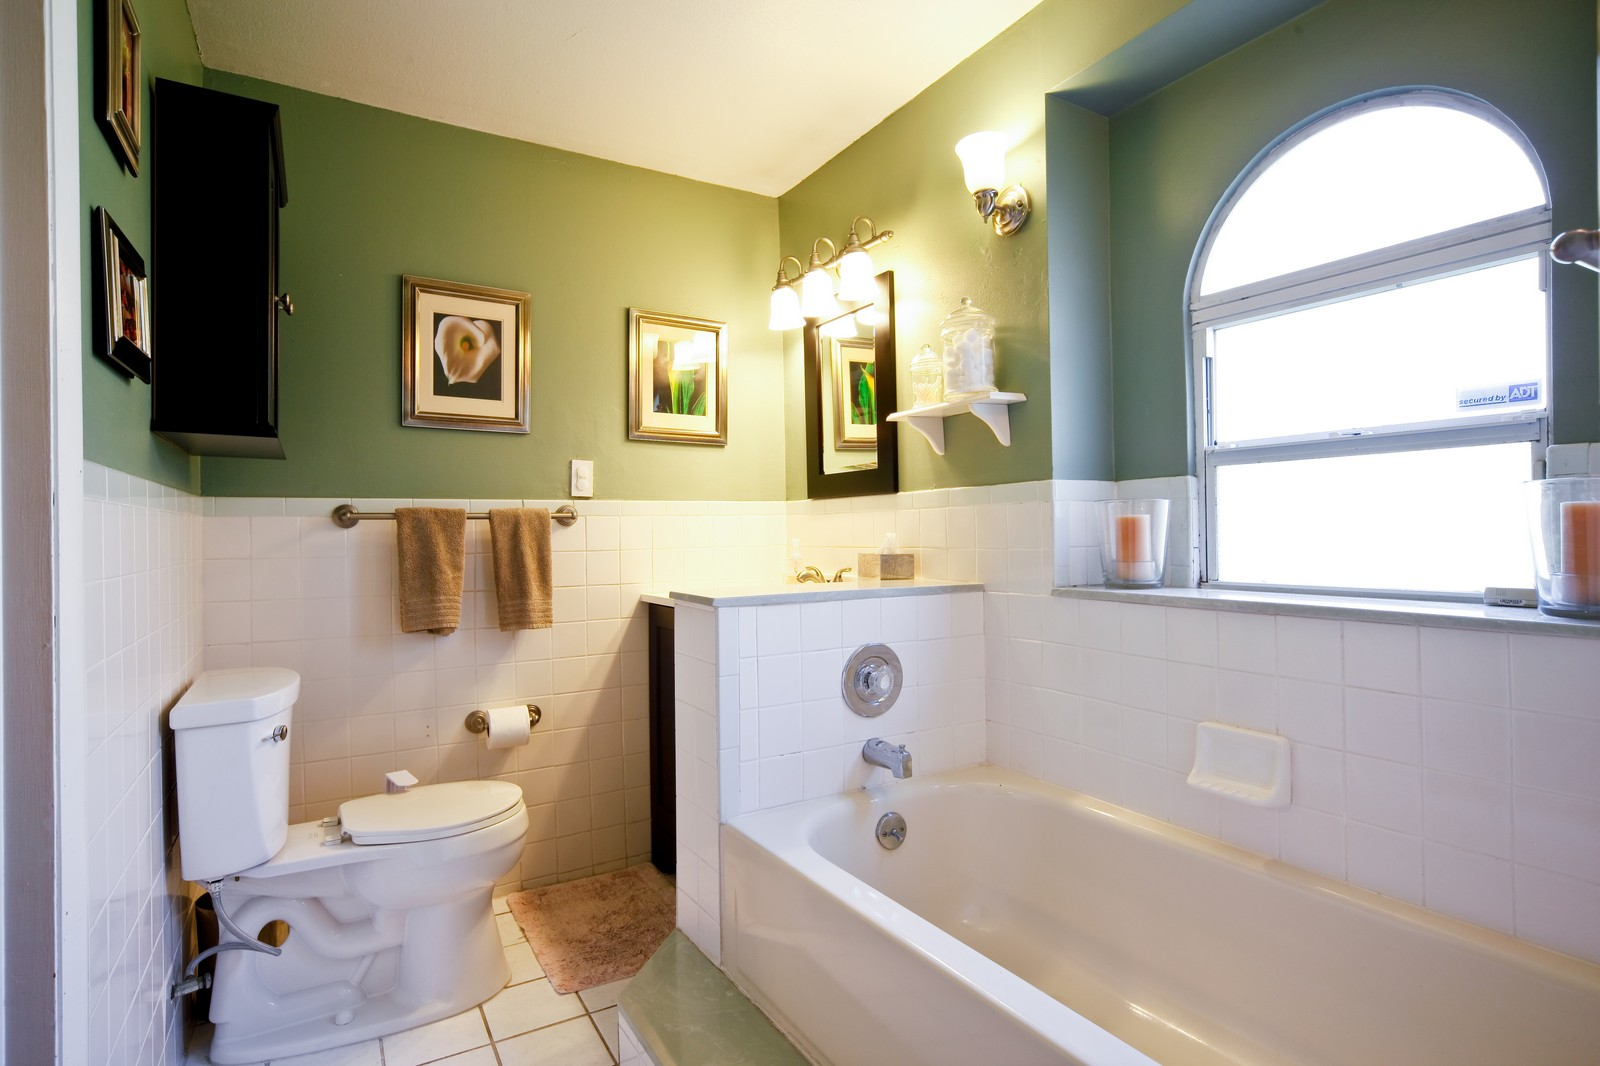 Real Estate Photography - 4603 W Kensington Ave, Tampa, FL, 33629 - Master Bathroom